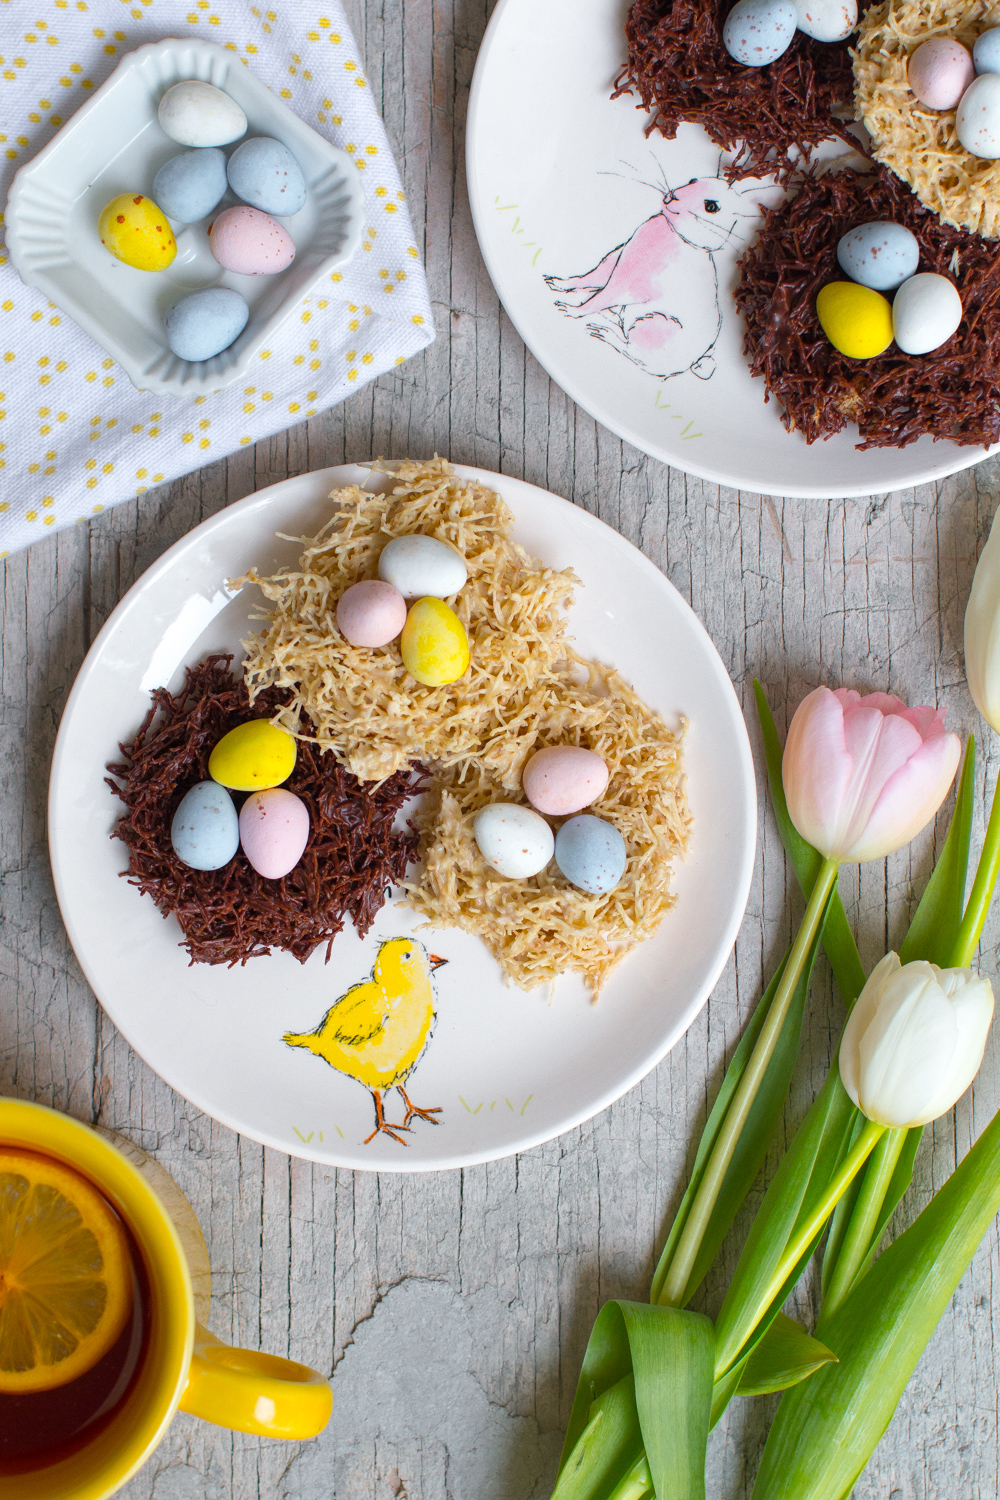 Dark and White Chocolate Birds' Nests